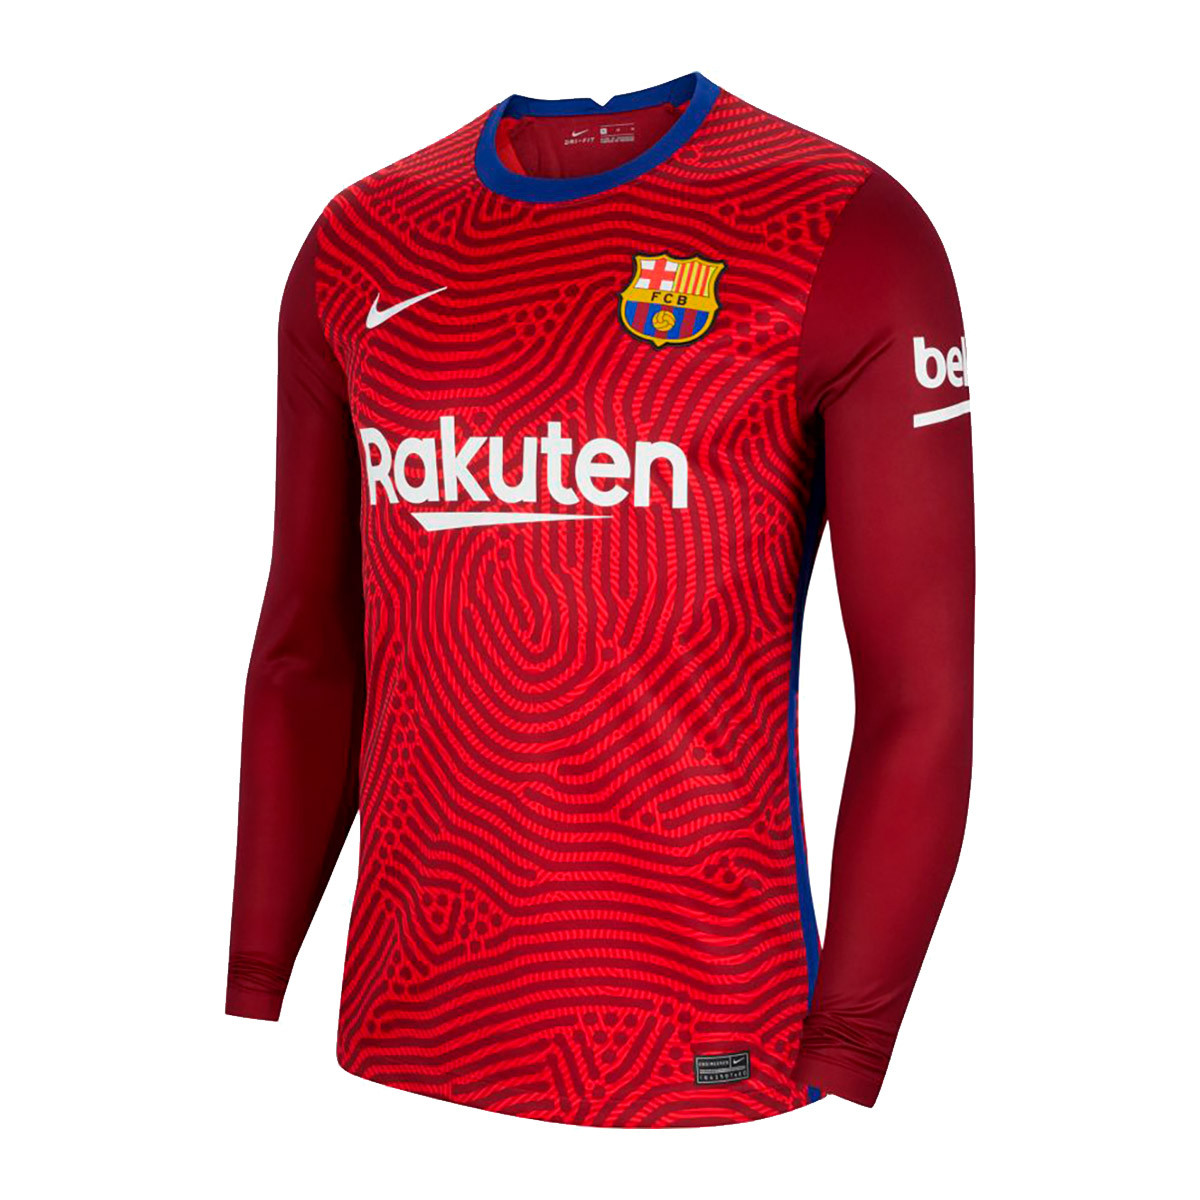 jersey nike fc barcelona stadium primera equipacion portero 2020 2021 university red team red white football store futbol emotion football boots